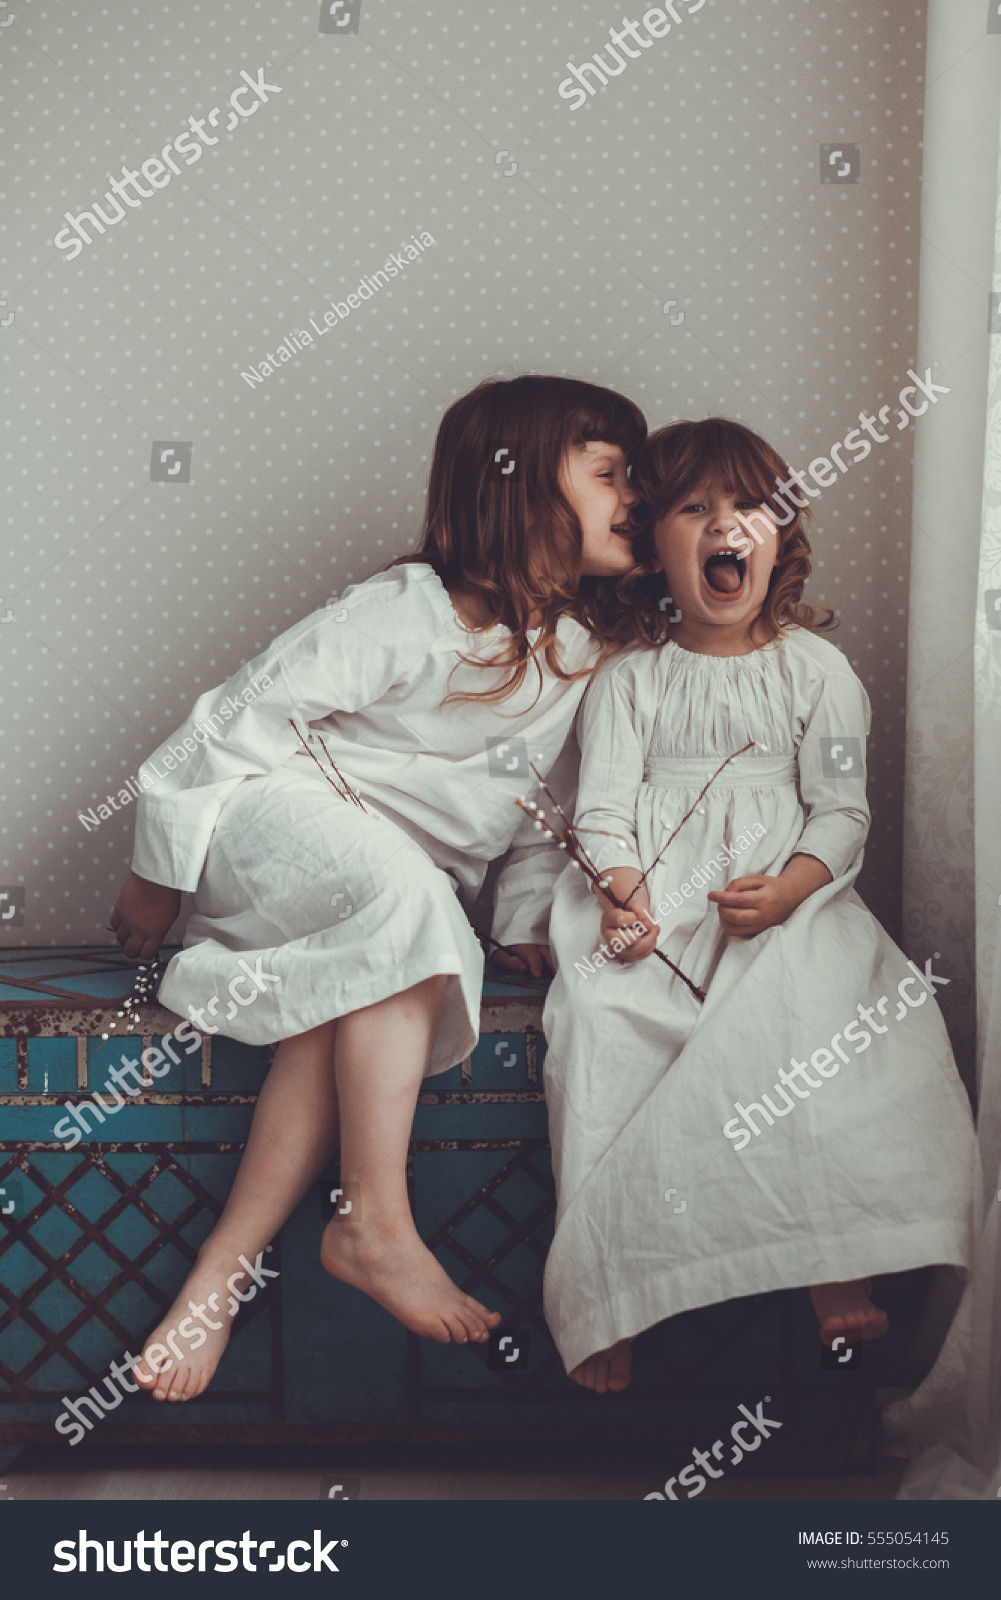 Gentle Sister Girls Nightgowns Retro Talking Stock Photo (Edit Now ... a468127ca